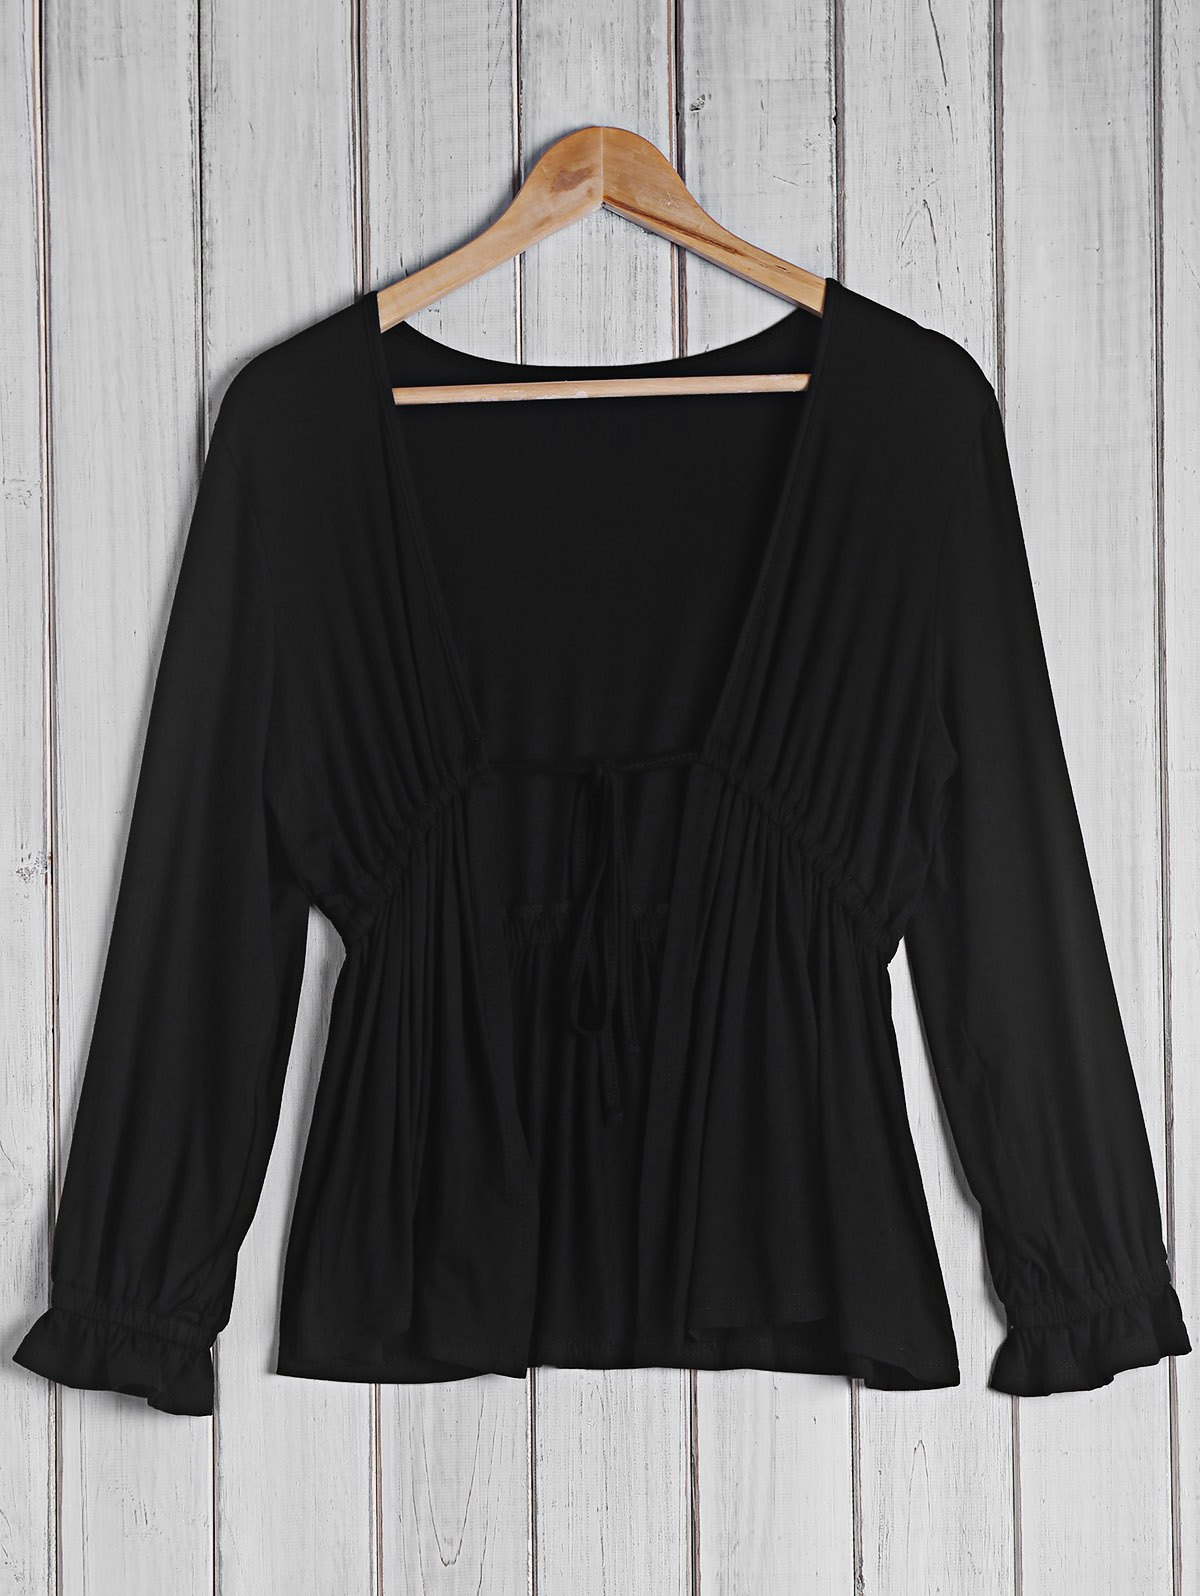 Trendy Women's Plunging Neck 3/4 Sleeve Black Blouse For Women - BLACK L